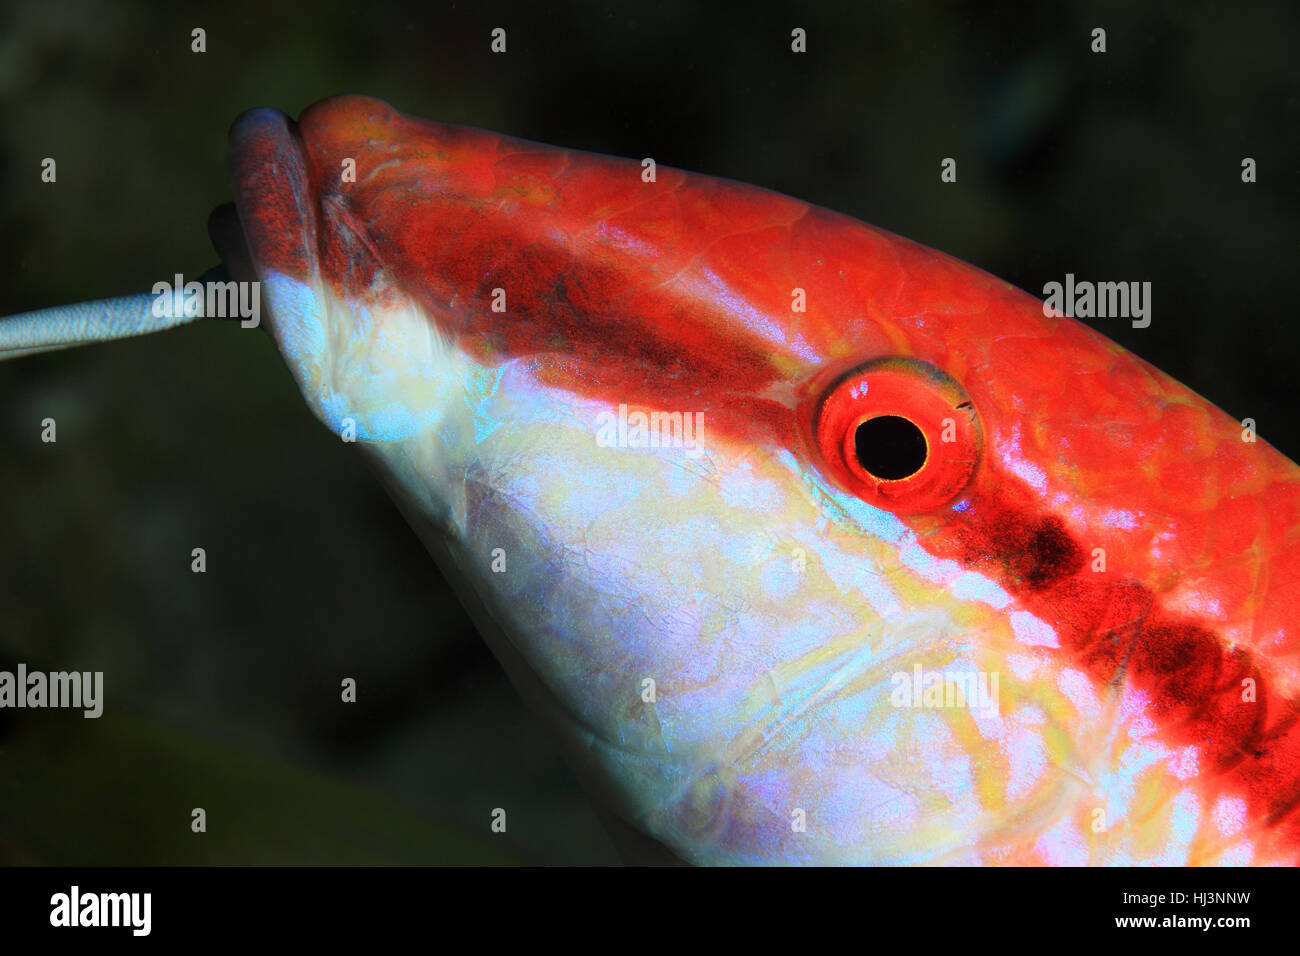 Redstriped goatfish (Parupeneus rubescens) underwater in the coral reef of the red sea - Stock Image